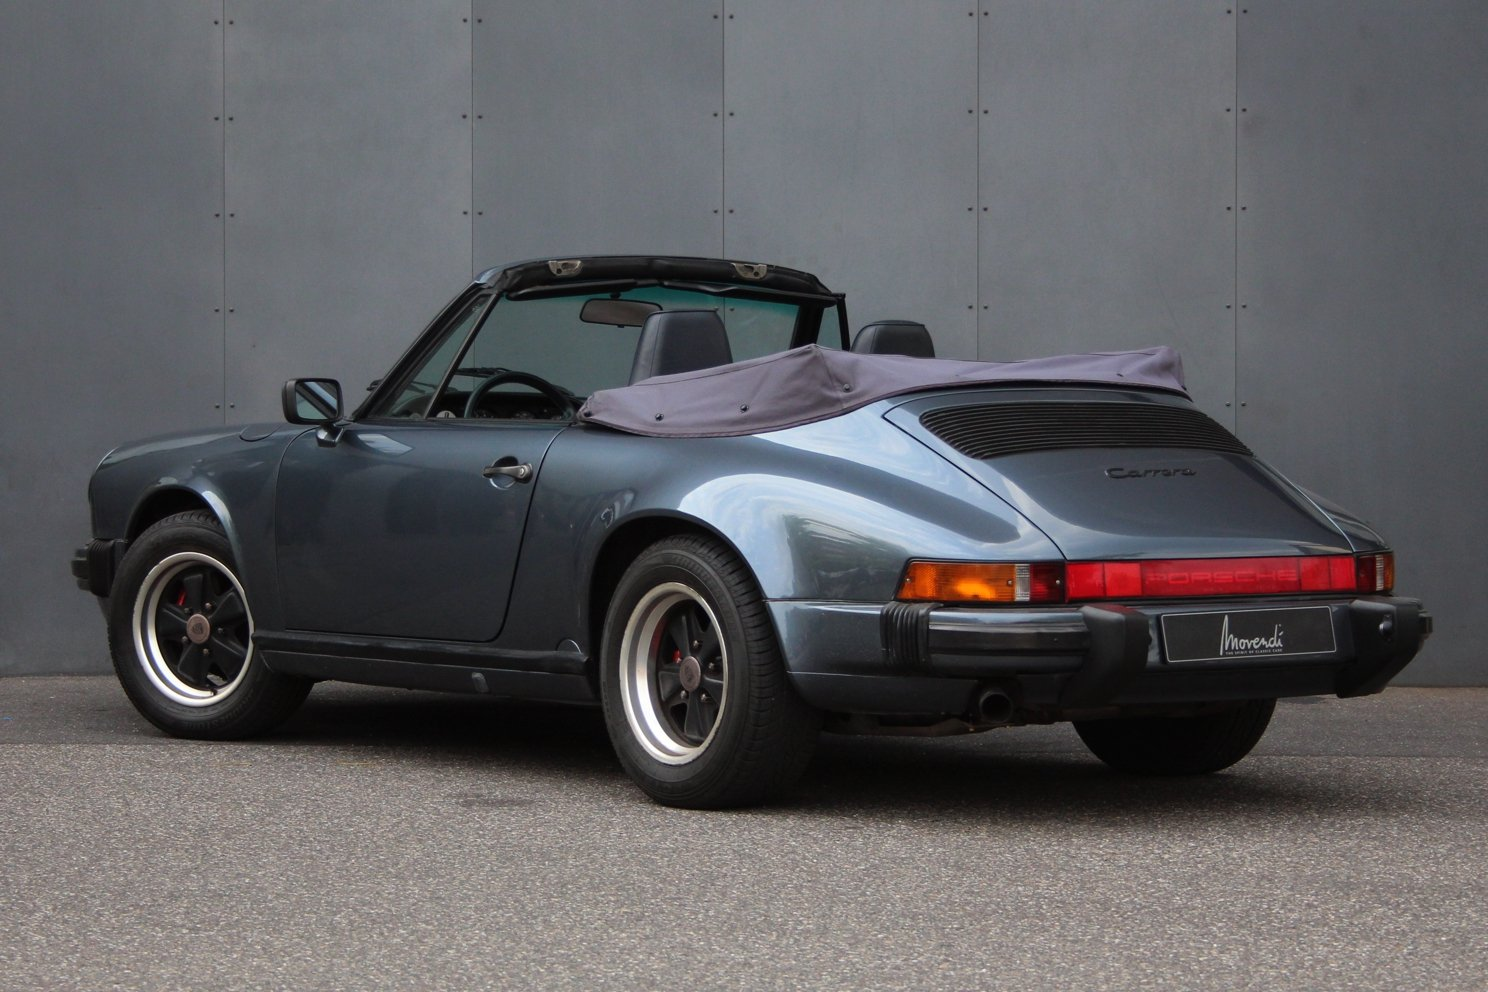 1987 Porsche 911 3.2 Carrera Cabriolet G50 Getriebe LHD For Sale (picture 2 of 6)